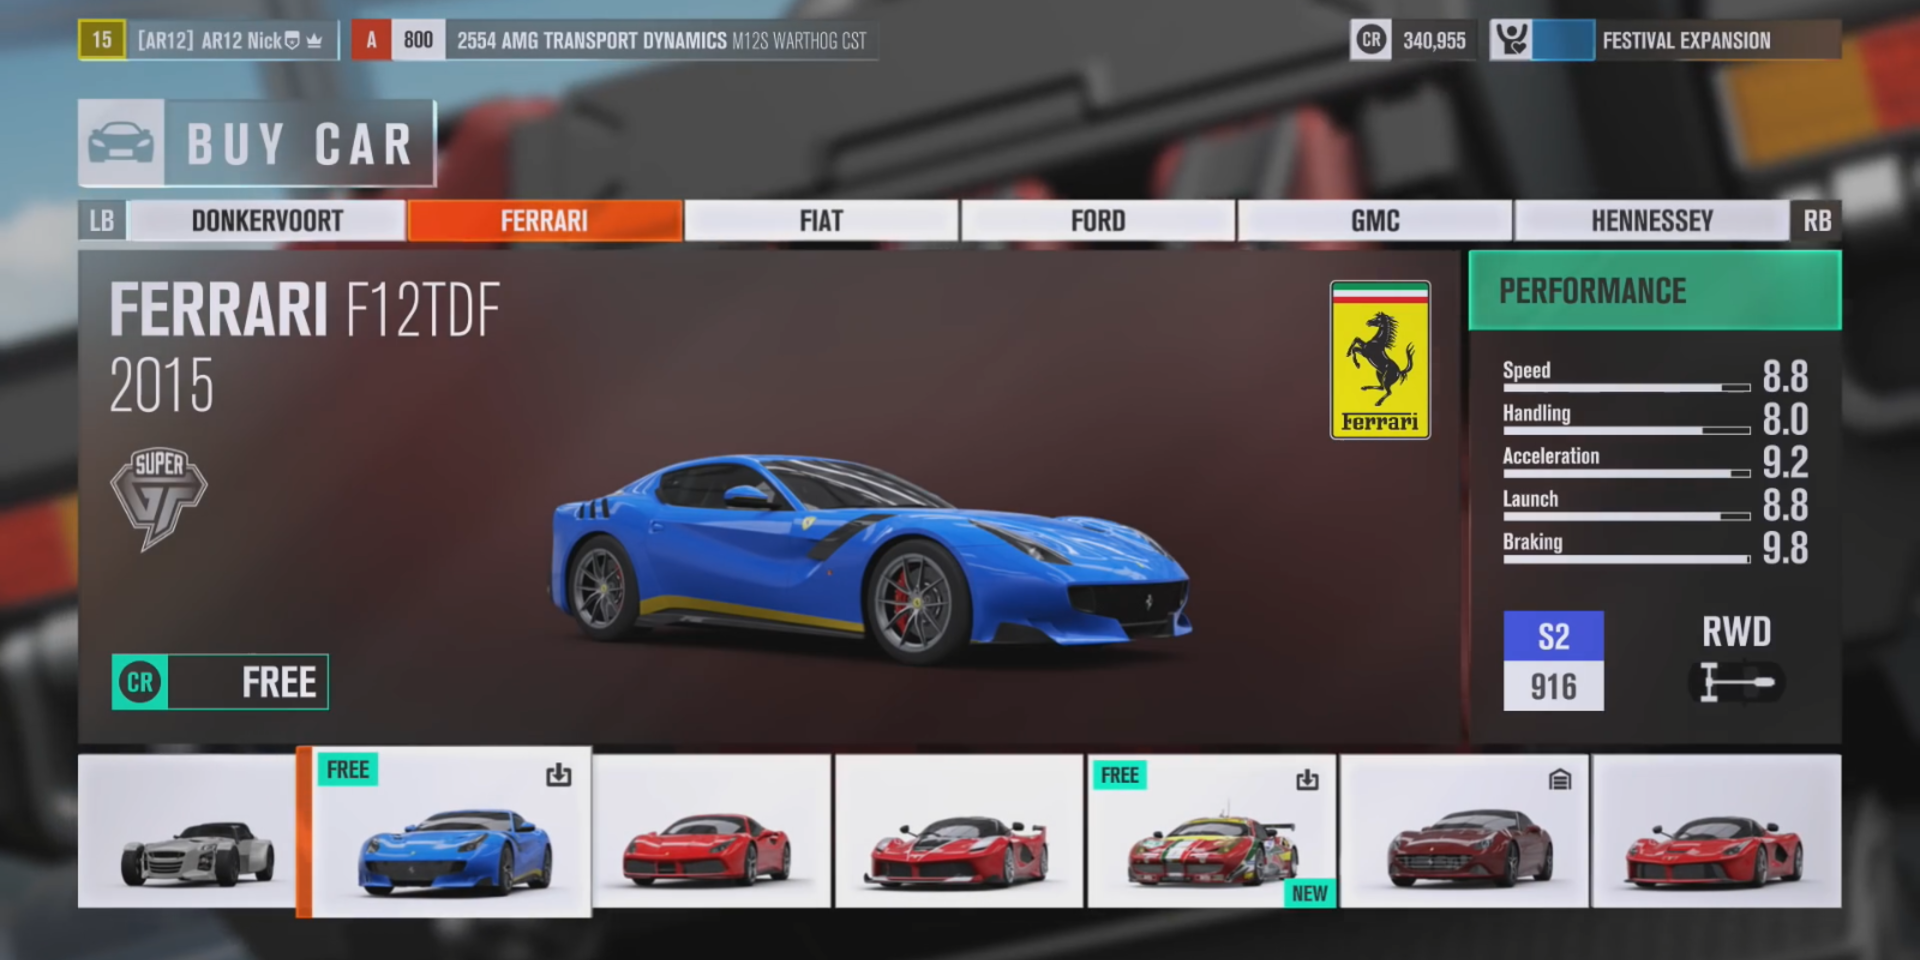 See the entire Forza Horizon 3 launch Car List - AR12Gaming